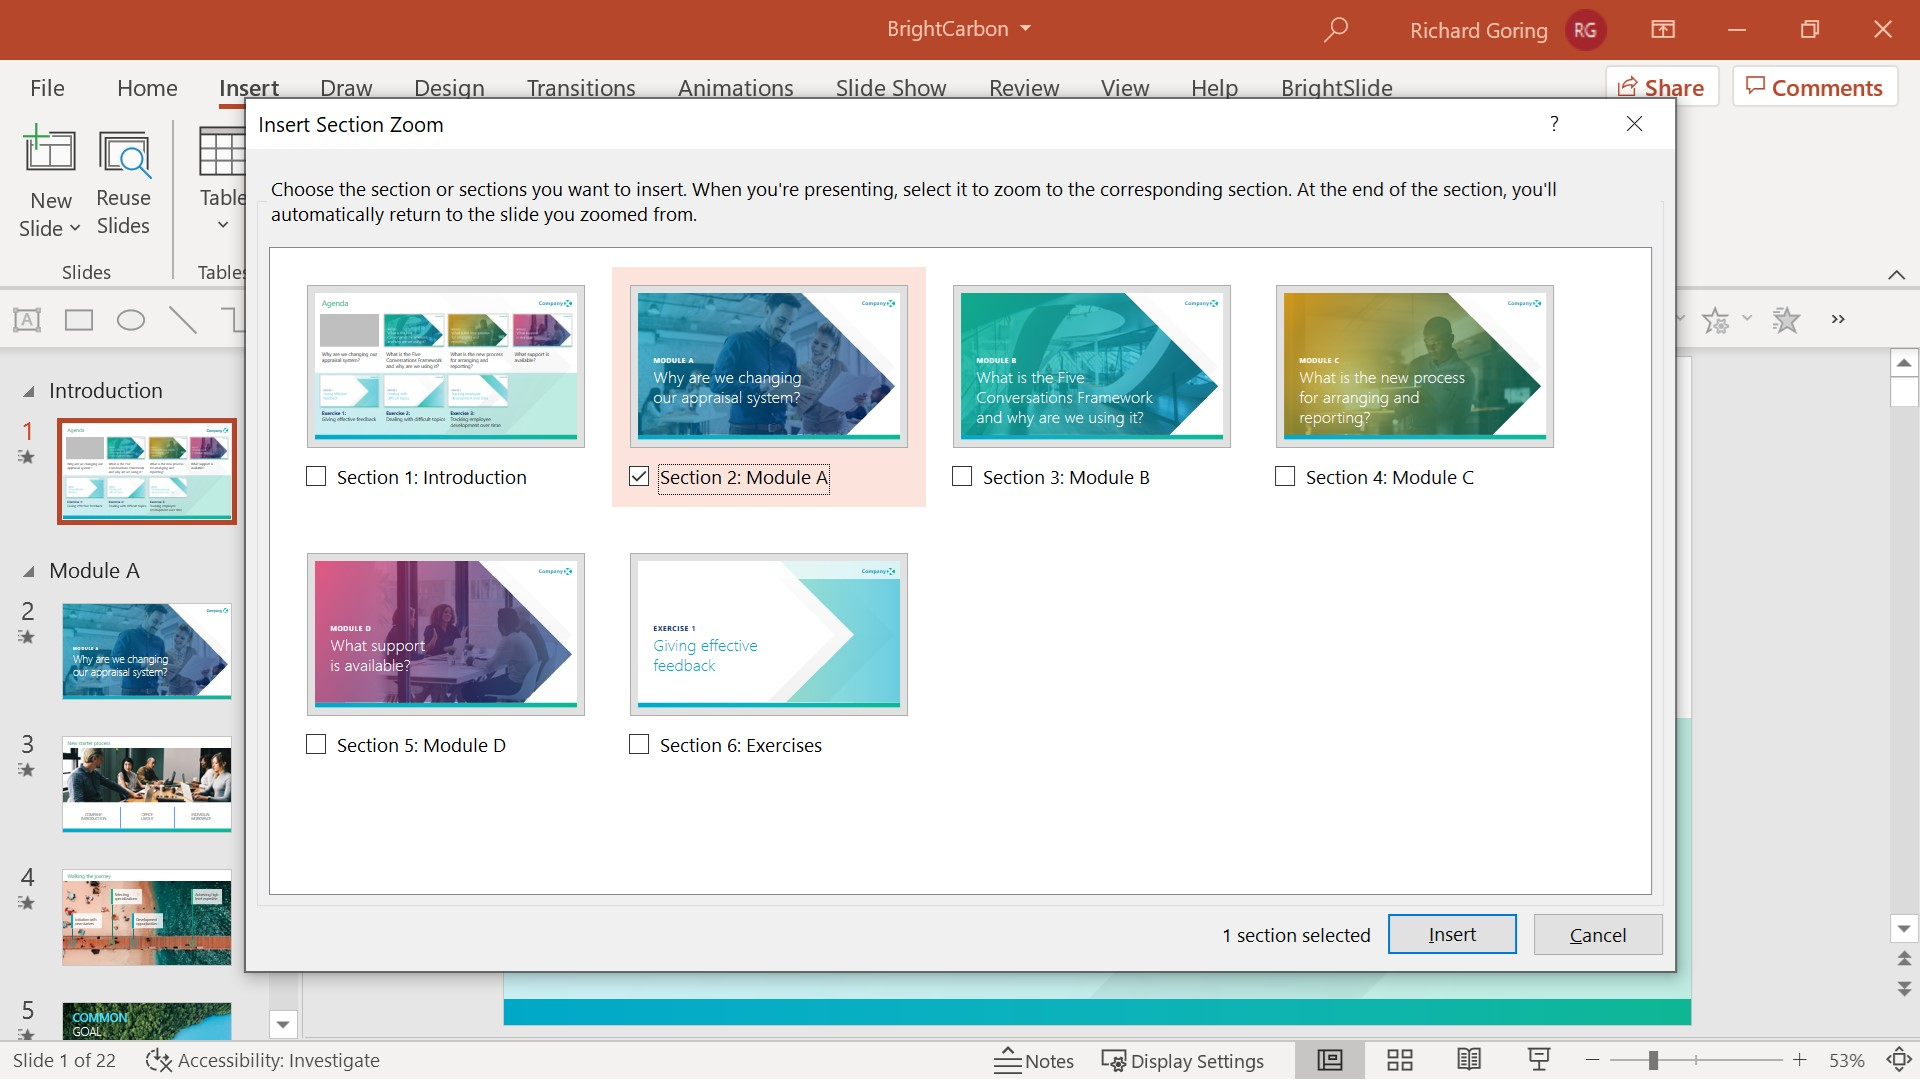 PowerPoint screenshot showing the Insert Section Zoom link pop up window.